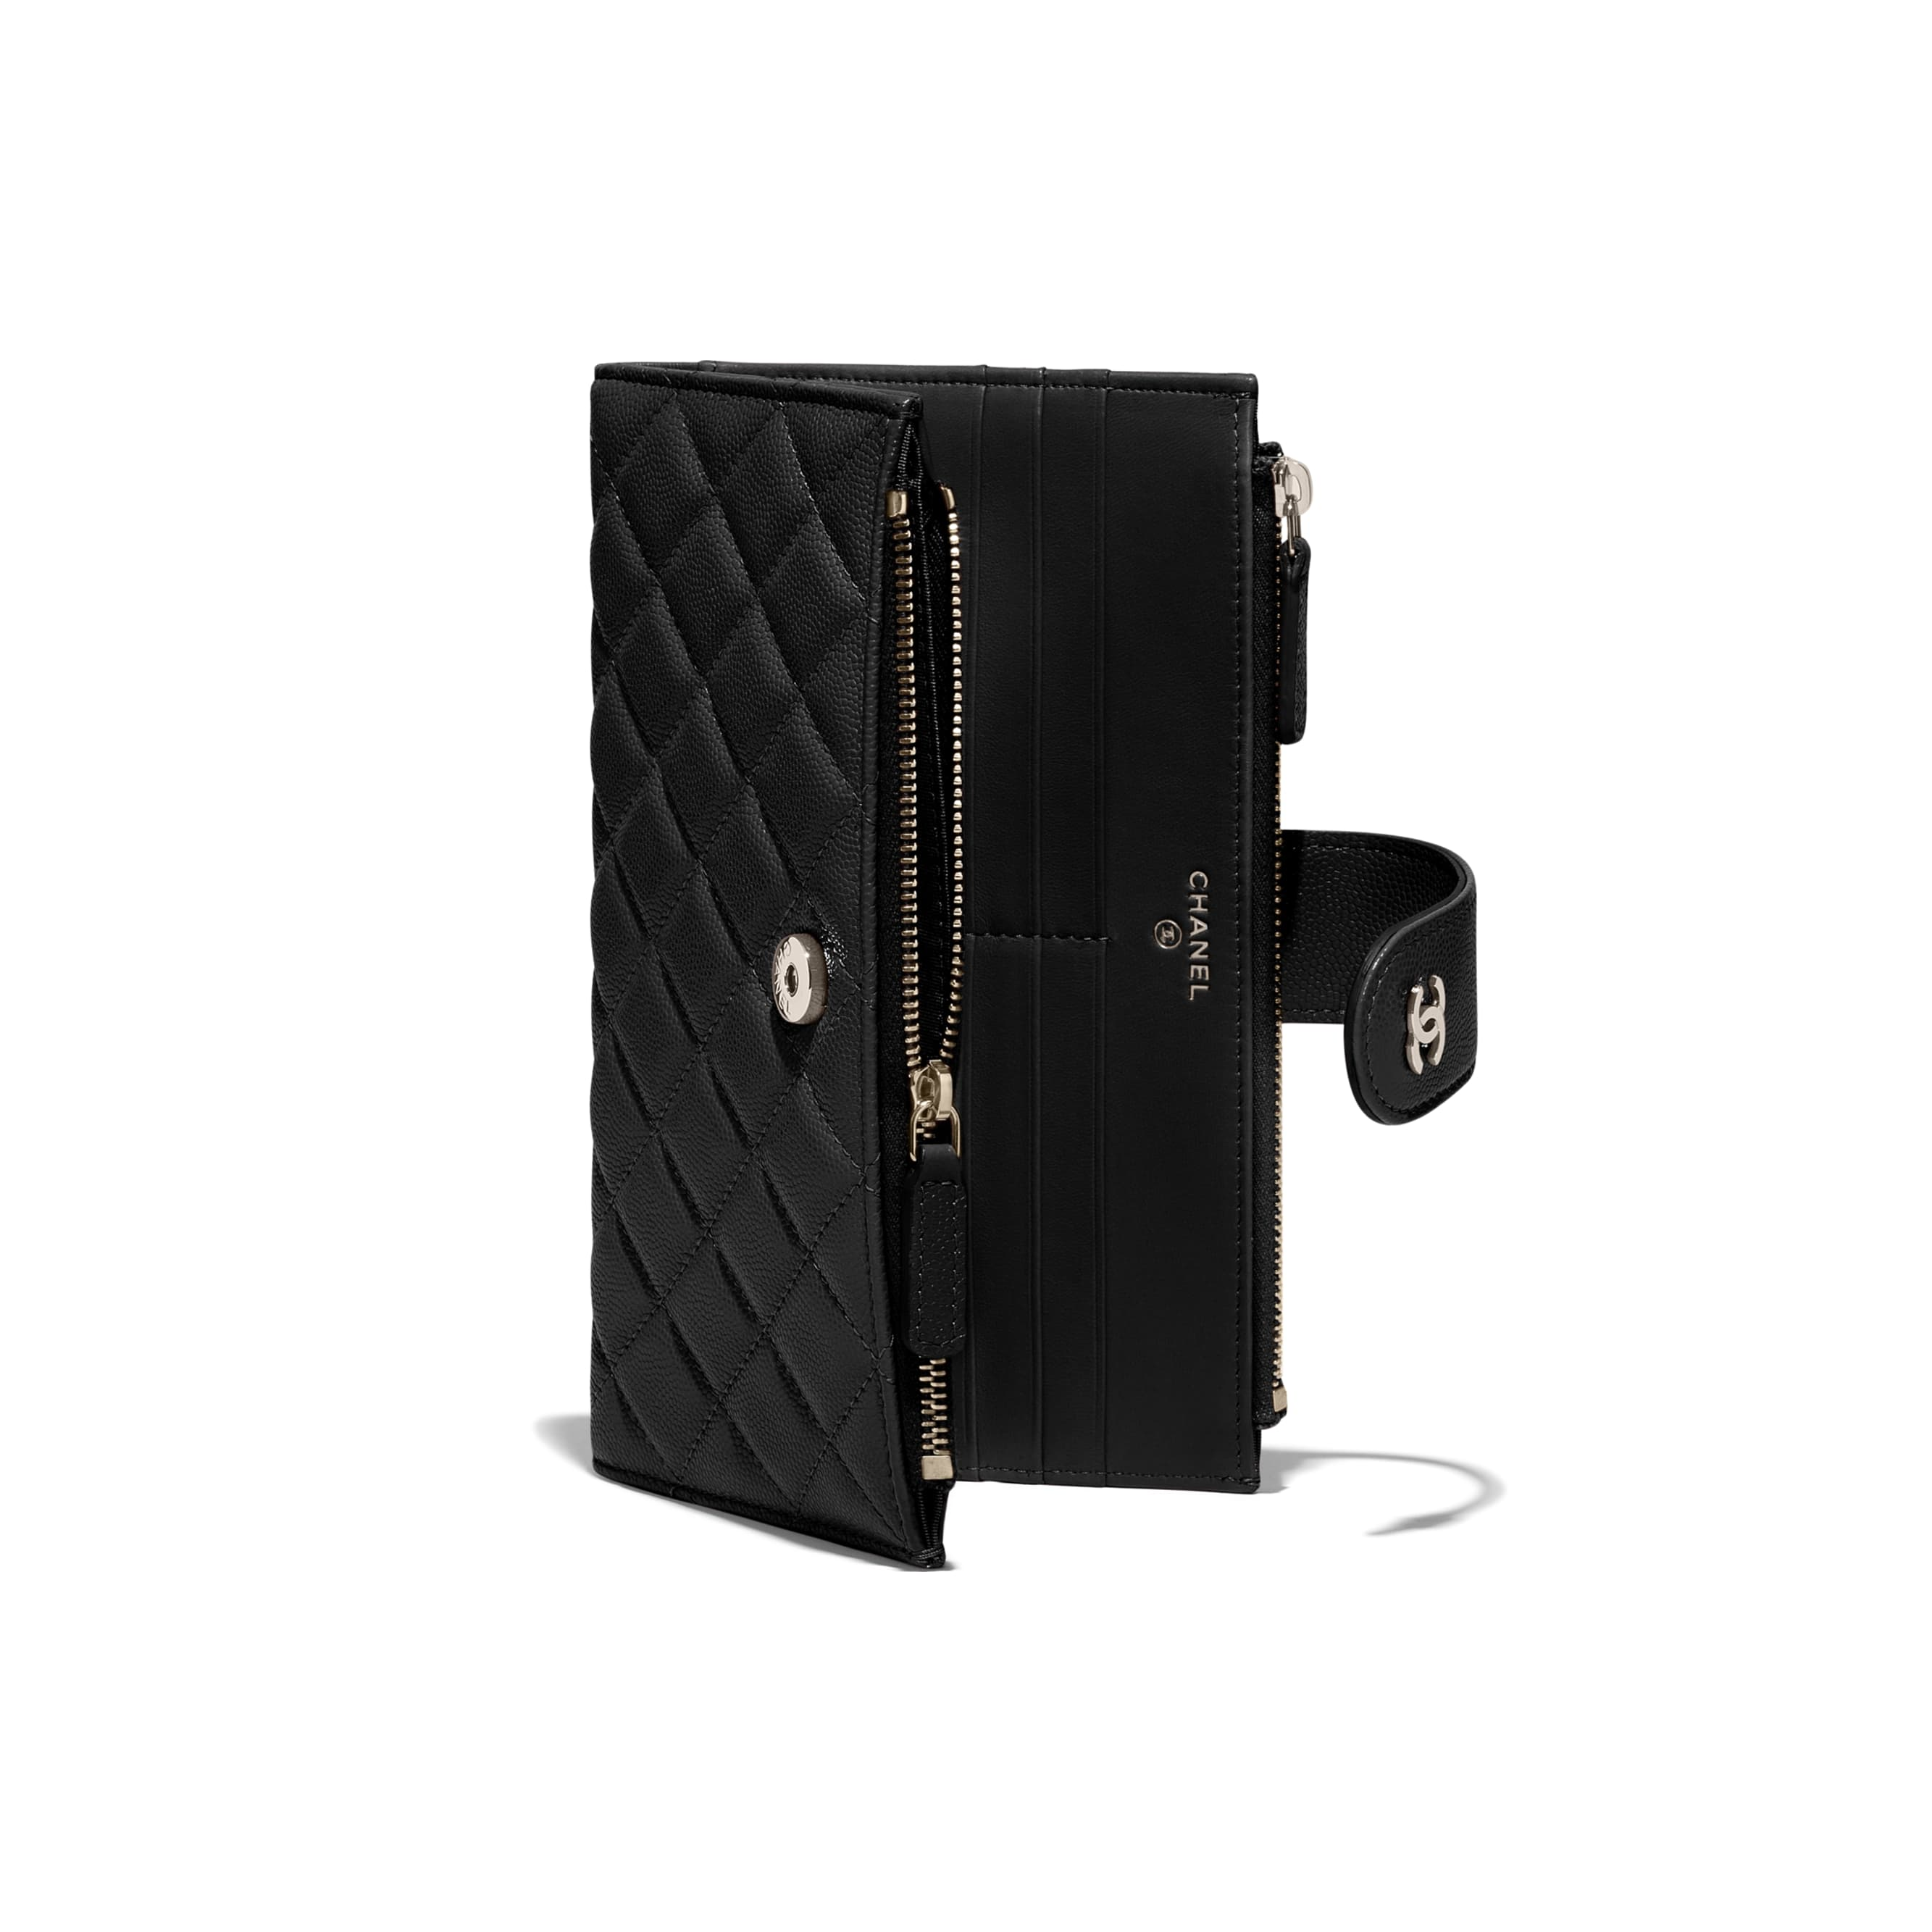 Classic Long Zipped Wallet - Black - Grained Calfskin & Gold-Tone Metal - CHANEL - Extra view - see standard sized version